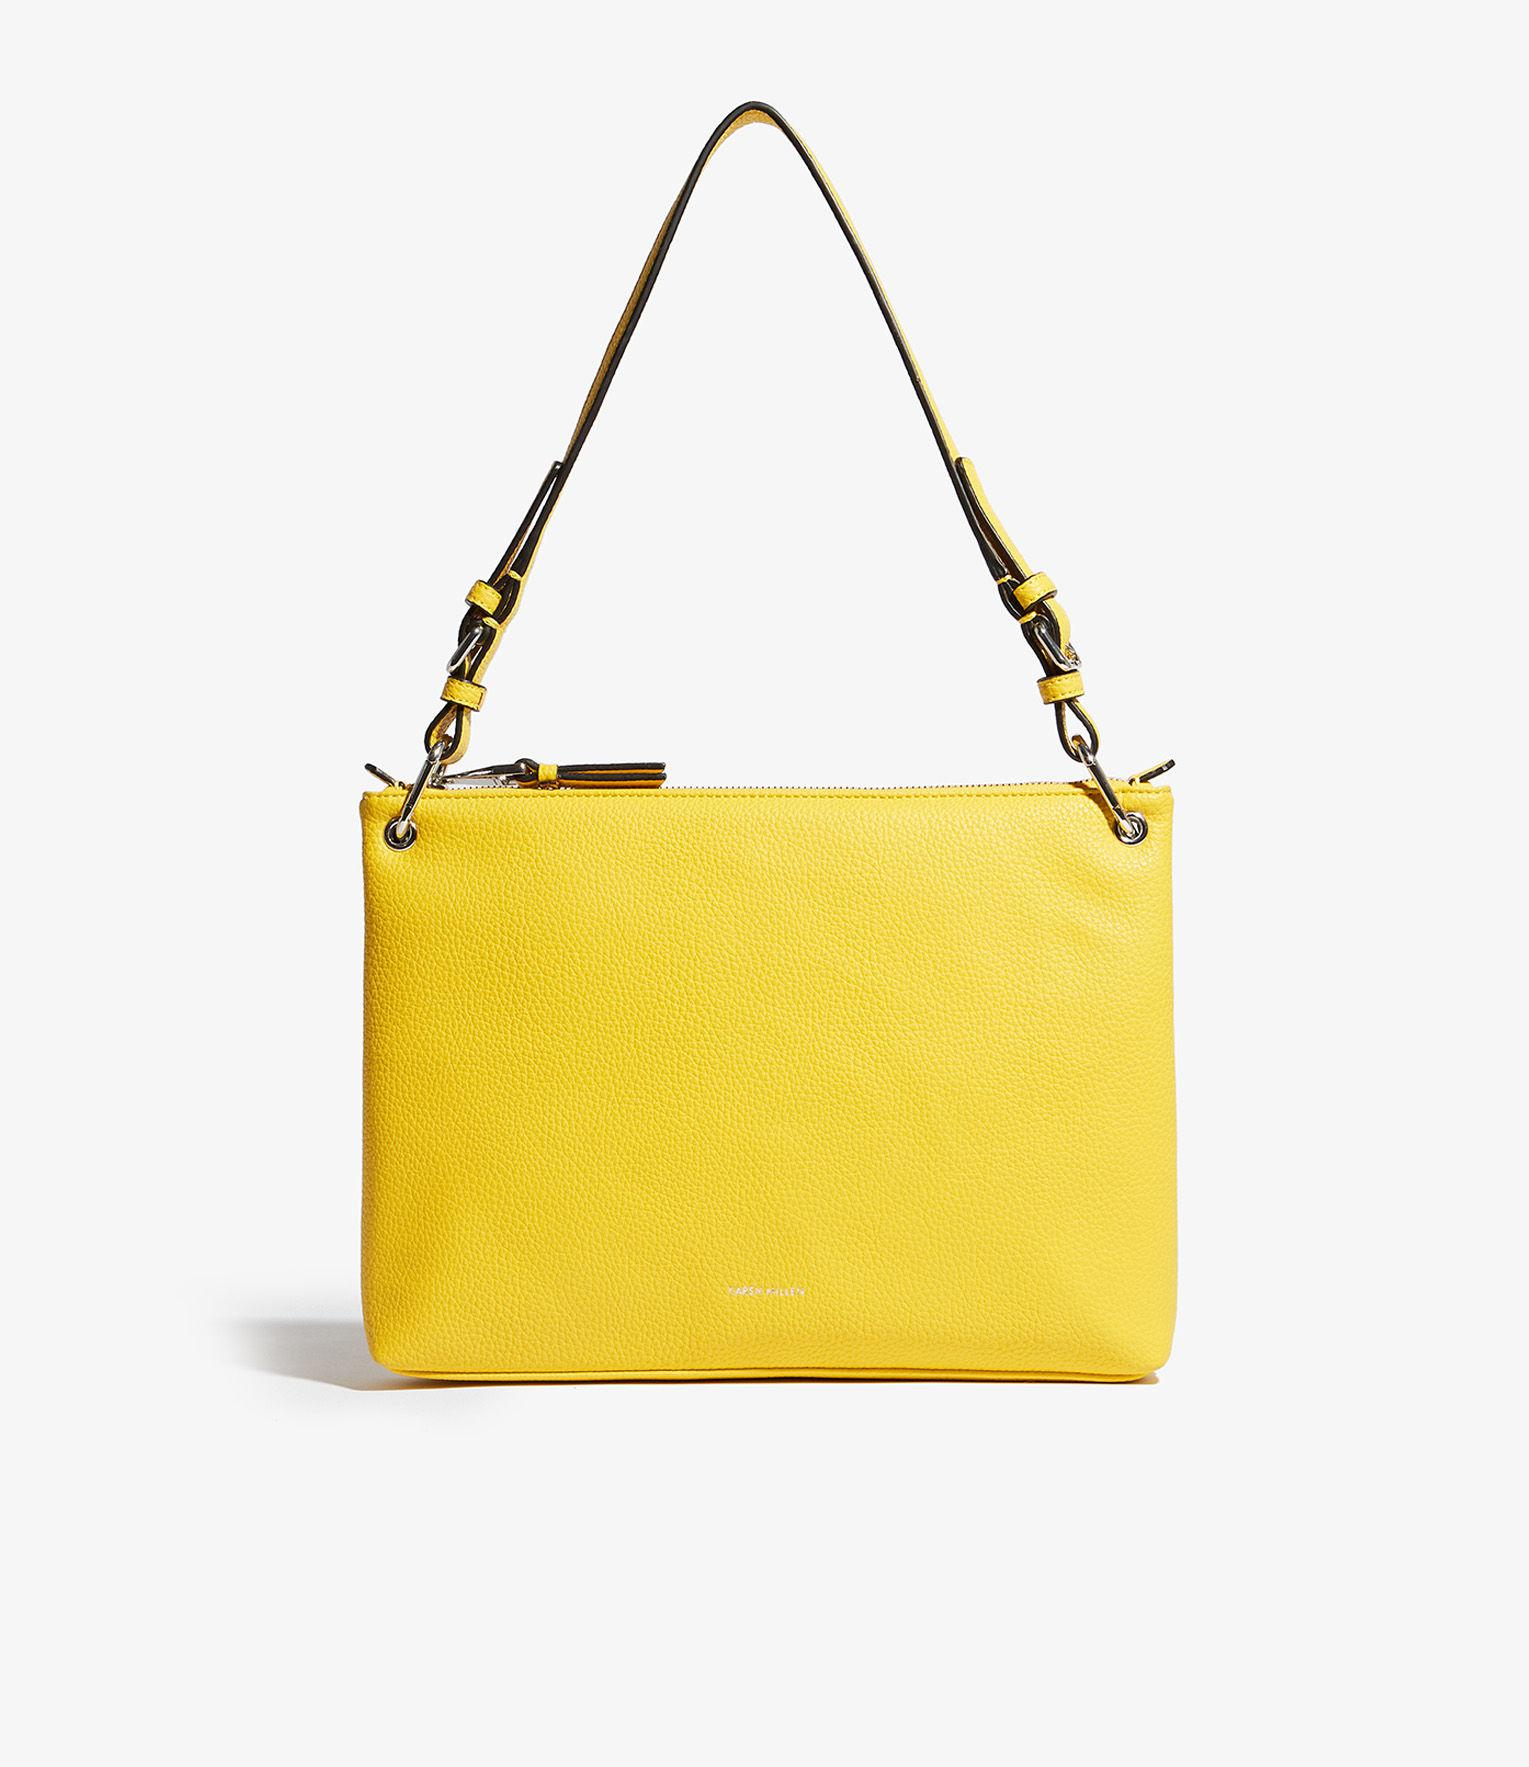 a6ade92307 Lyst - Karen Millen Structured Shoulder Bag in Yellow